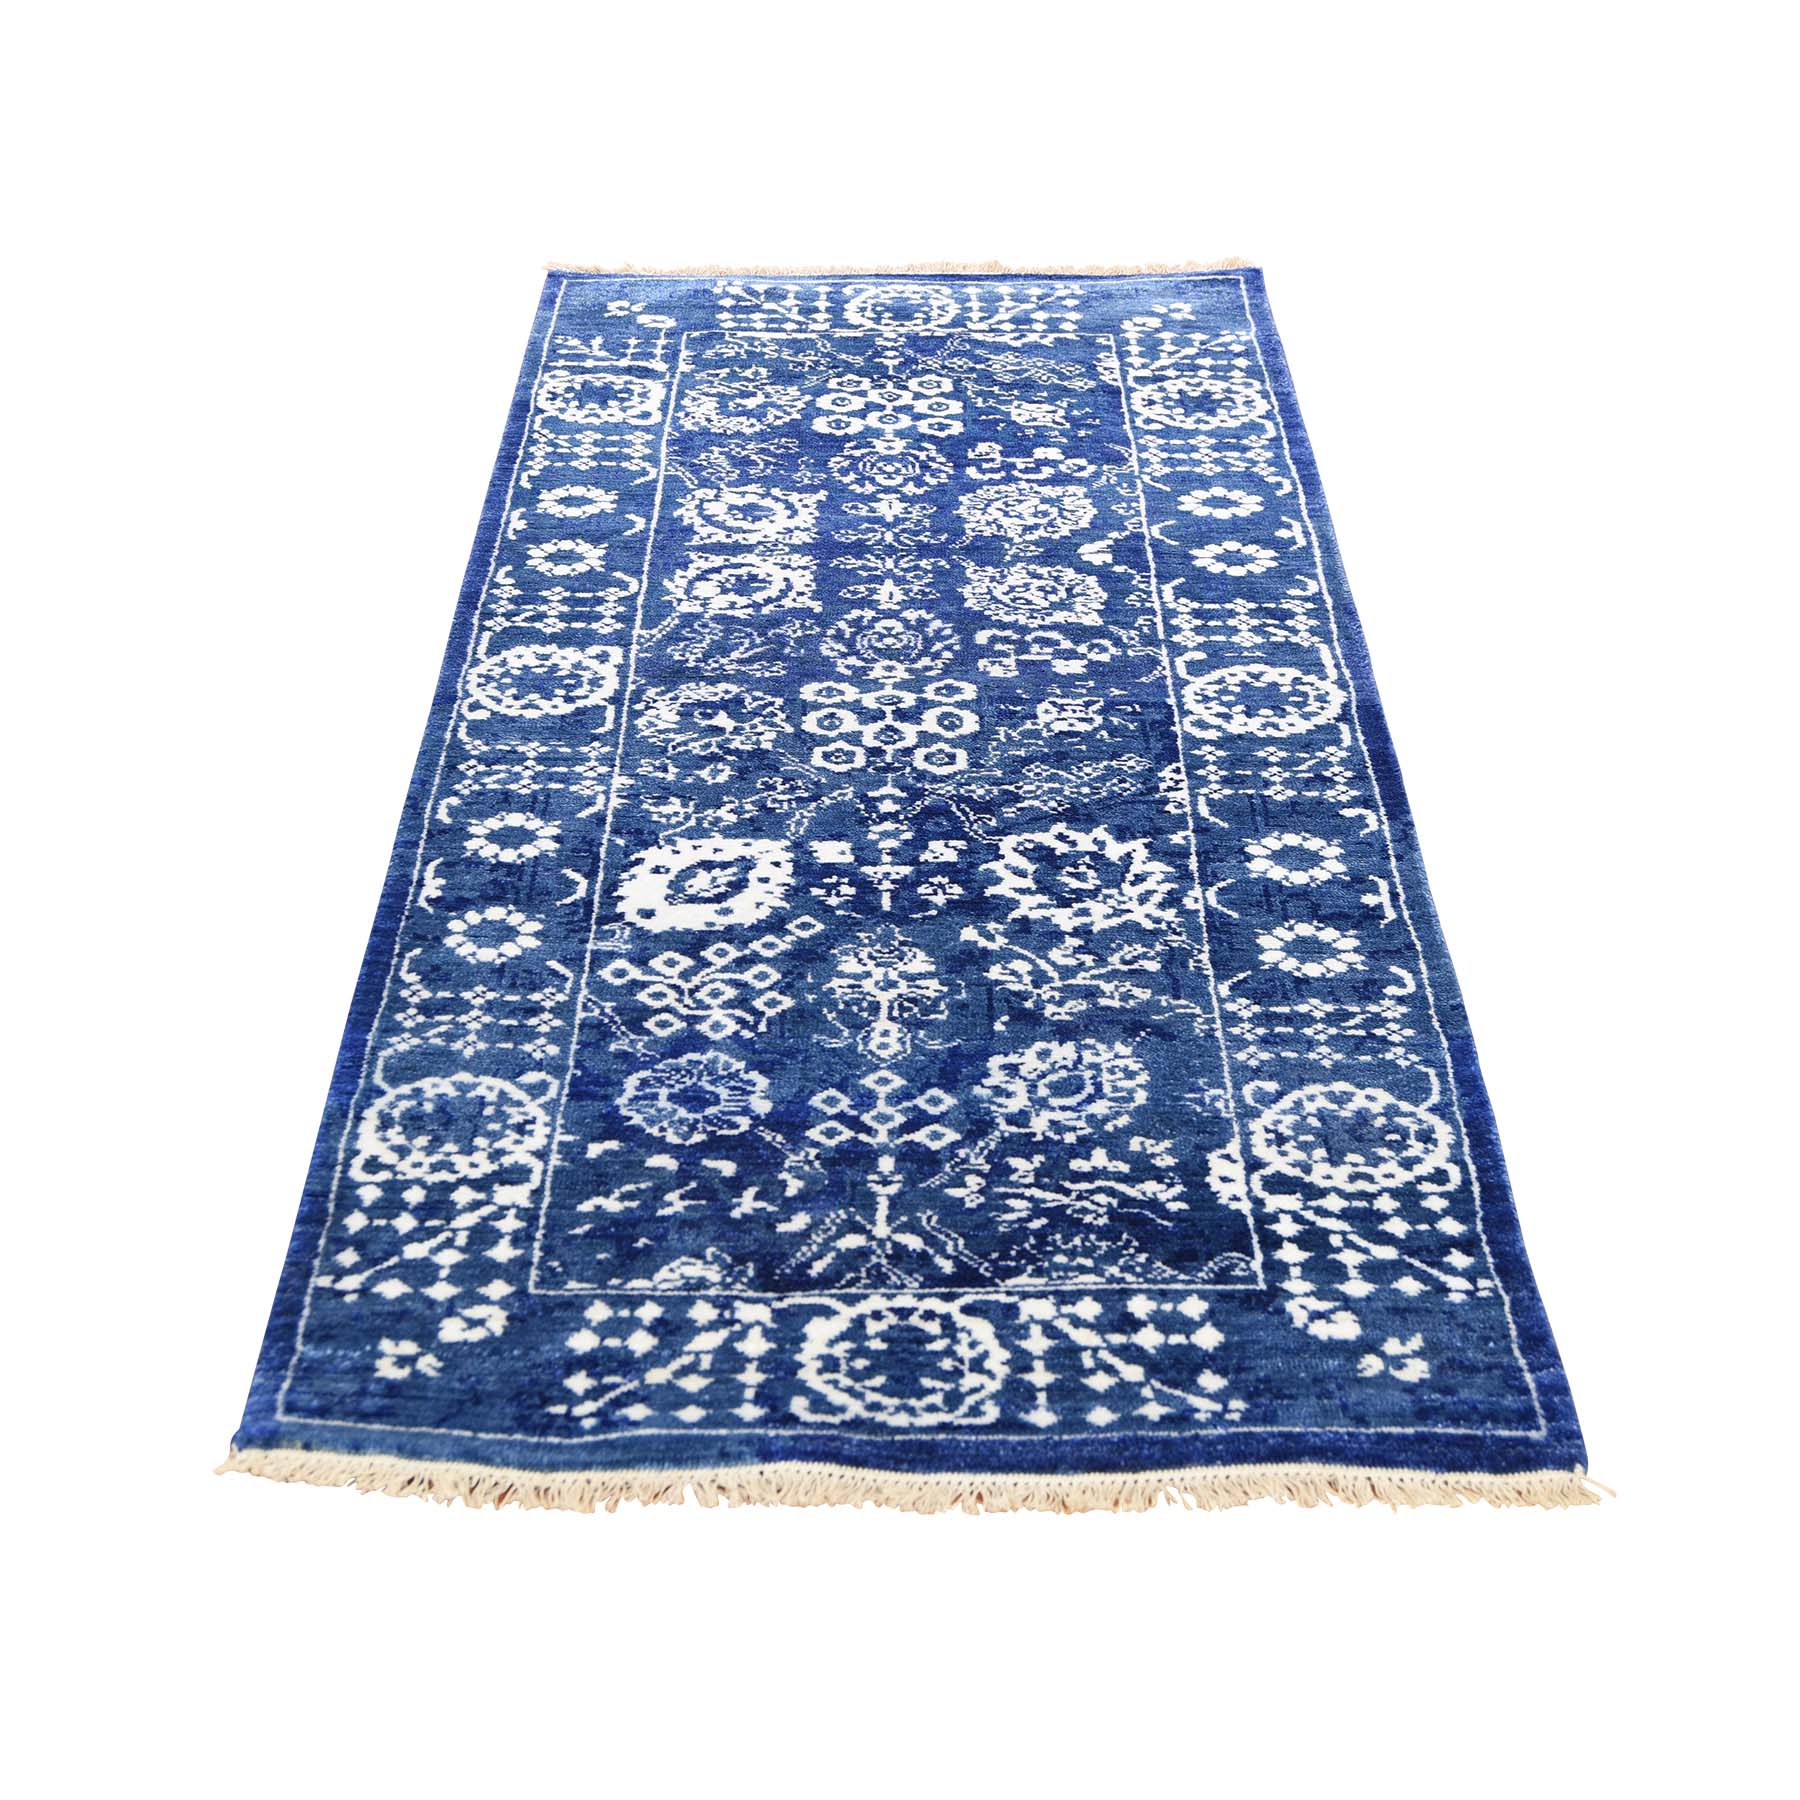 "2'7""X6' Hand-Knotted Wool And Silk Tone On Tone Tabriz Short Runner Oriental Rug moadd899"